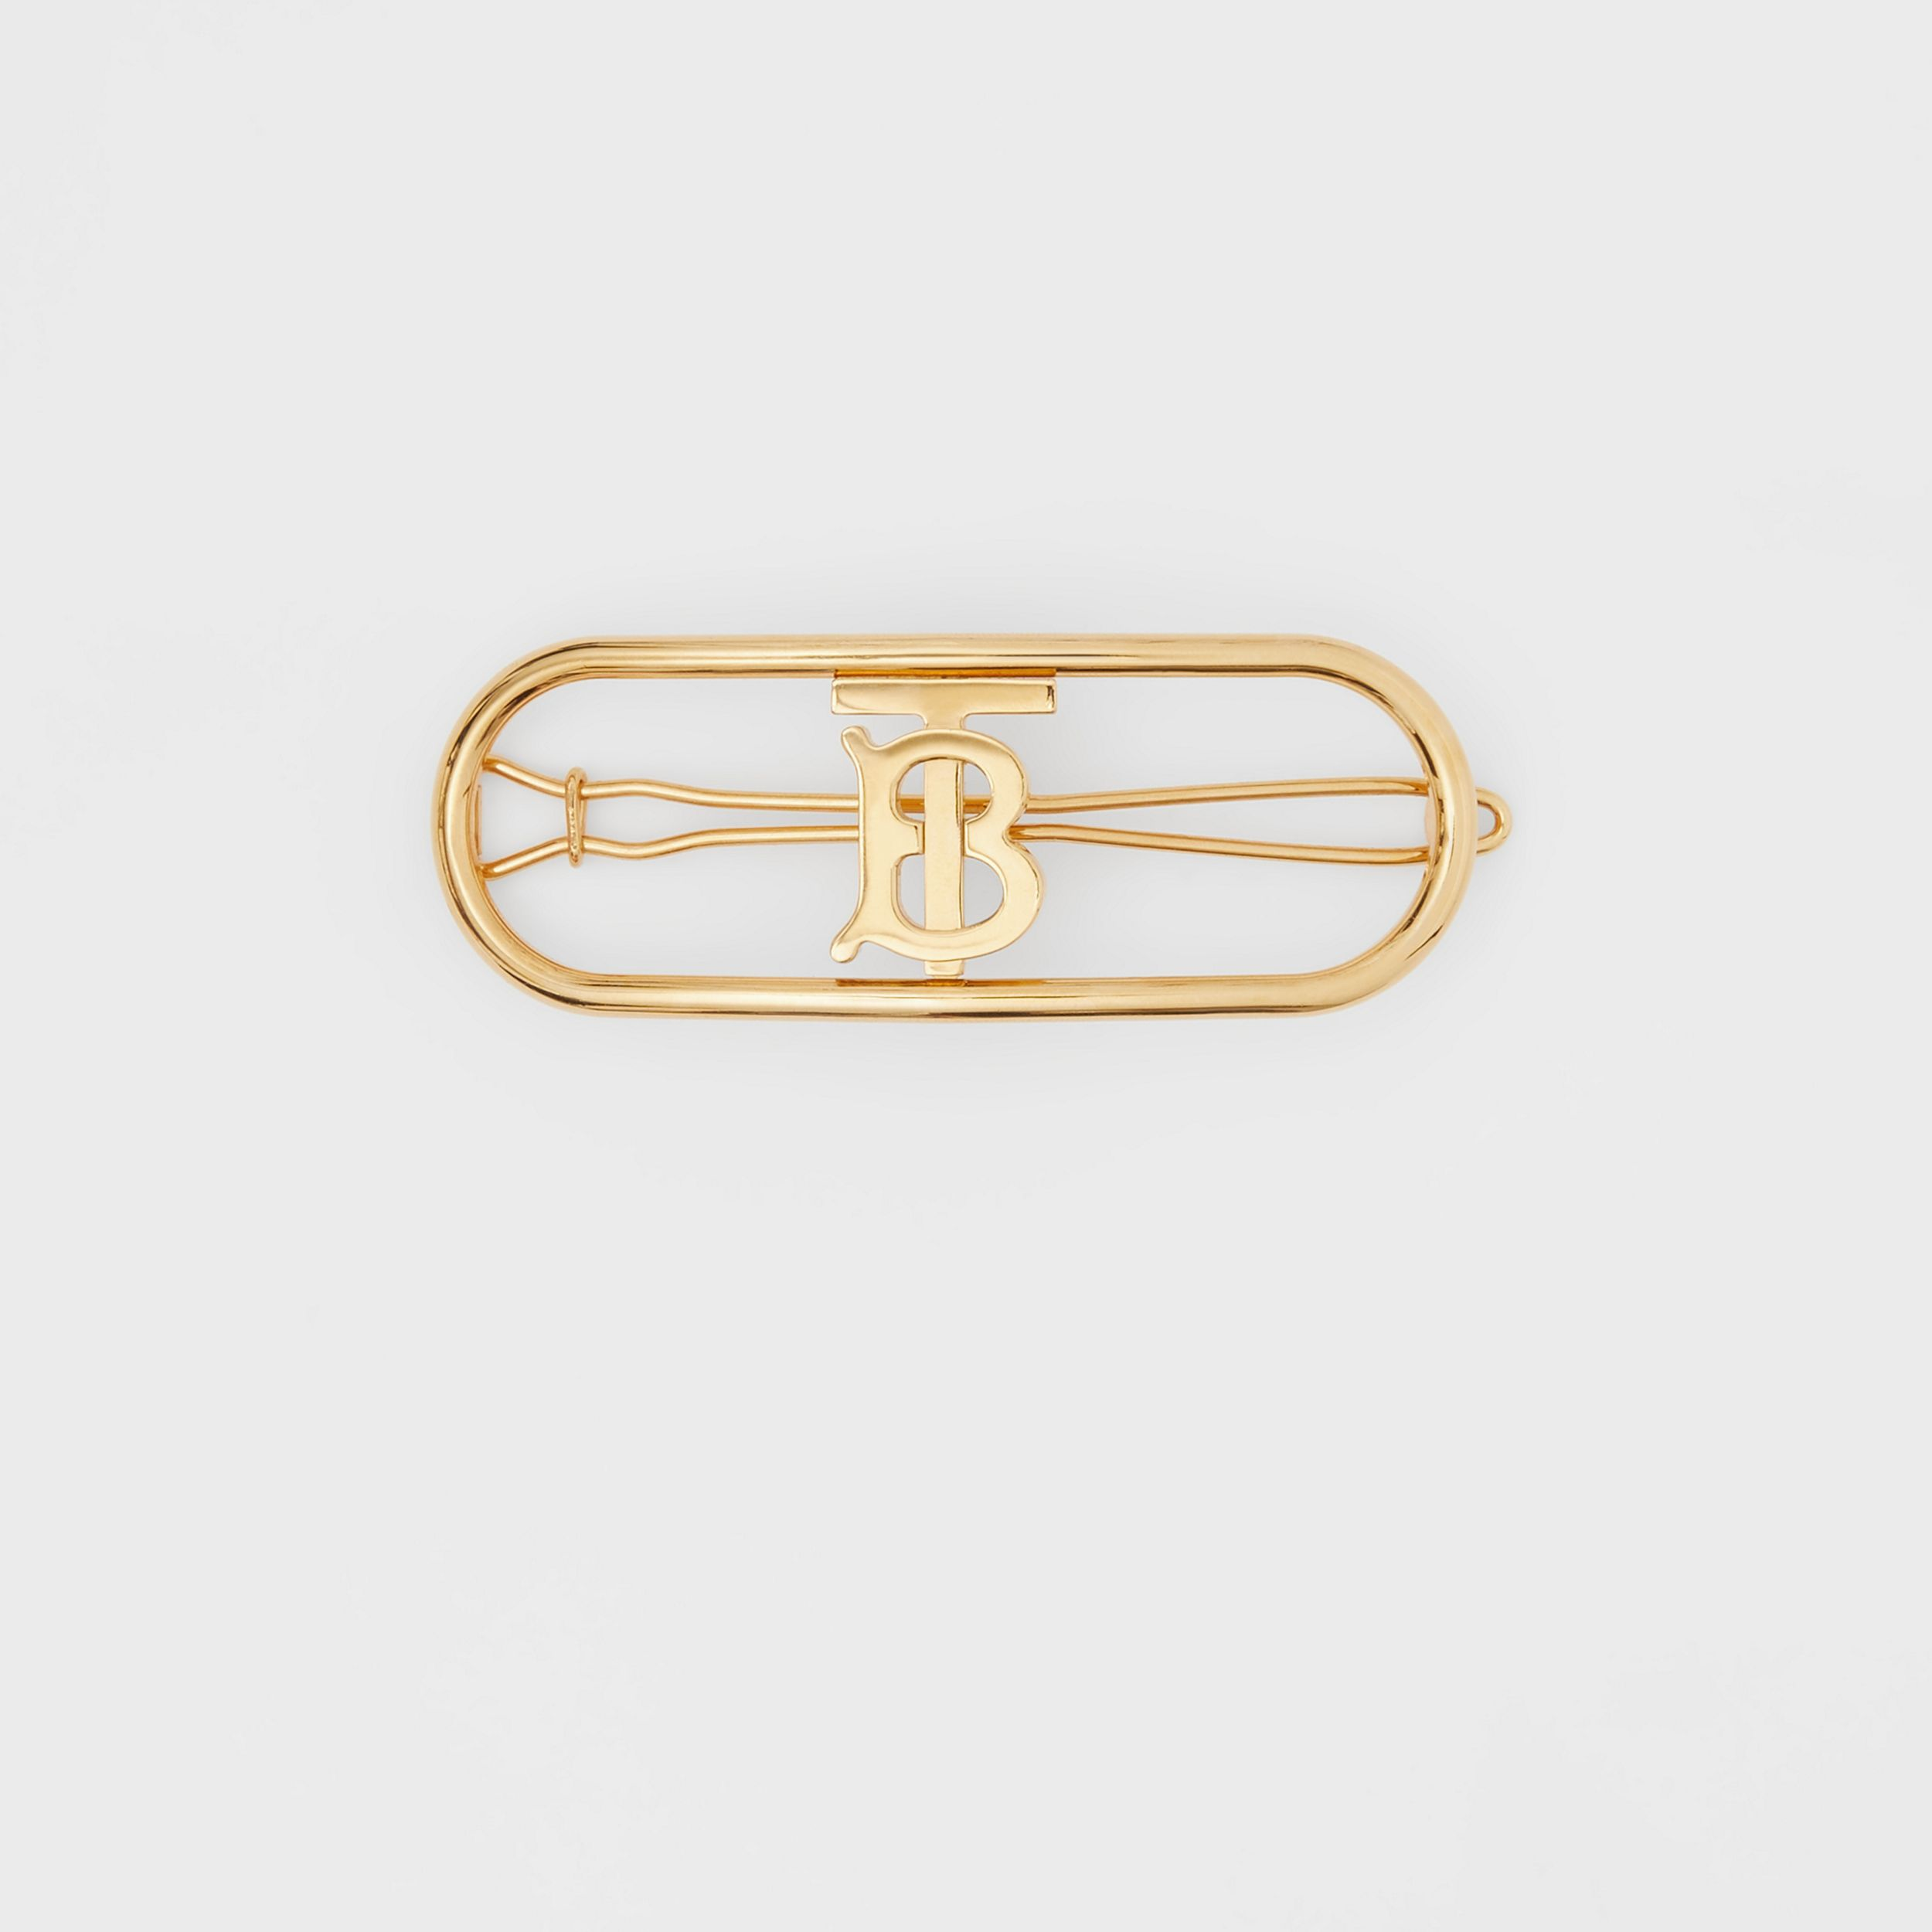 Gold-plated Monogram Motif Hair Clip in Light - Women | Burberry - 1